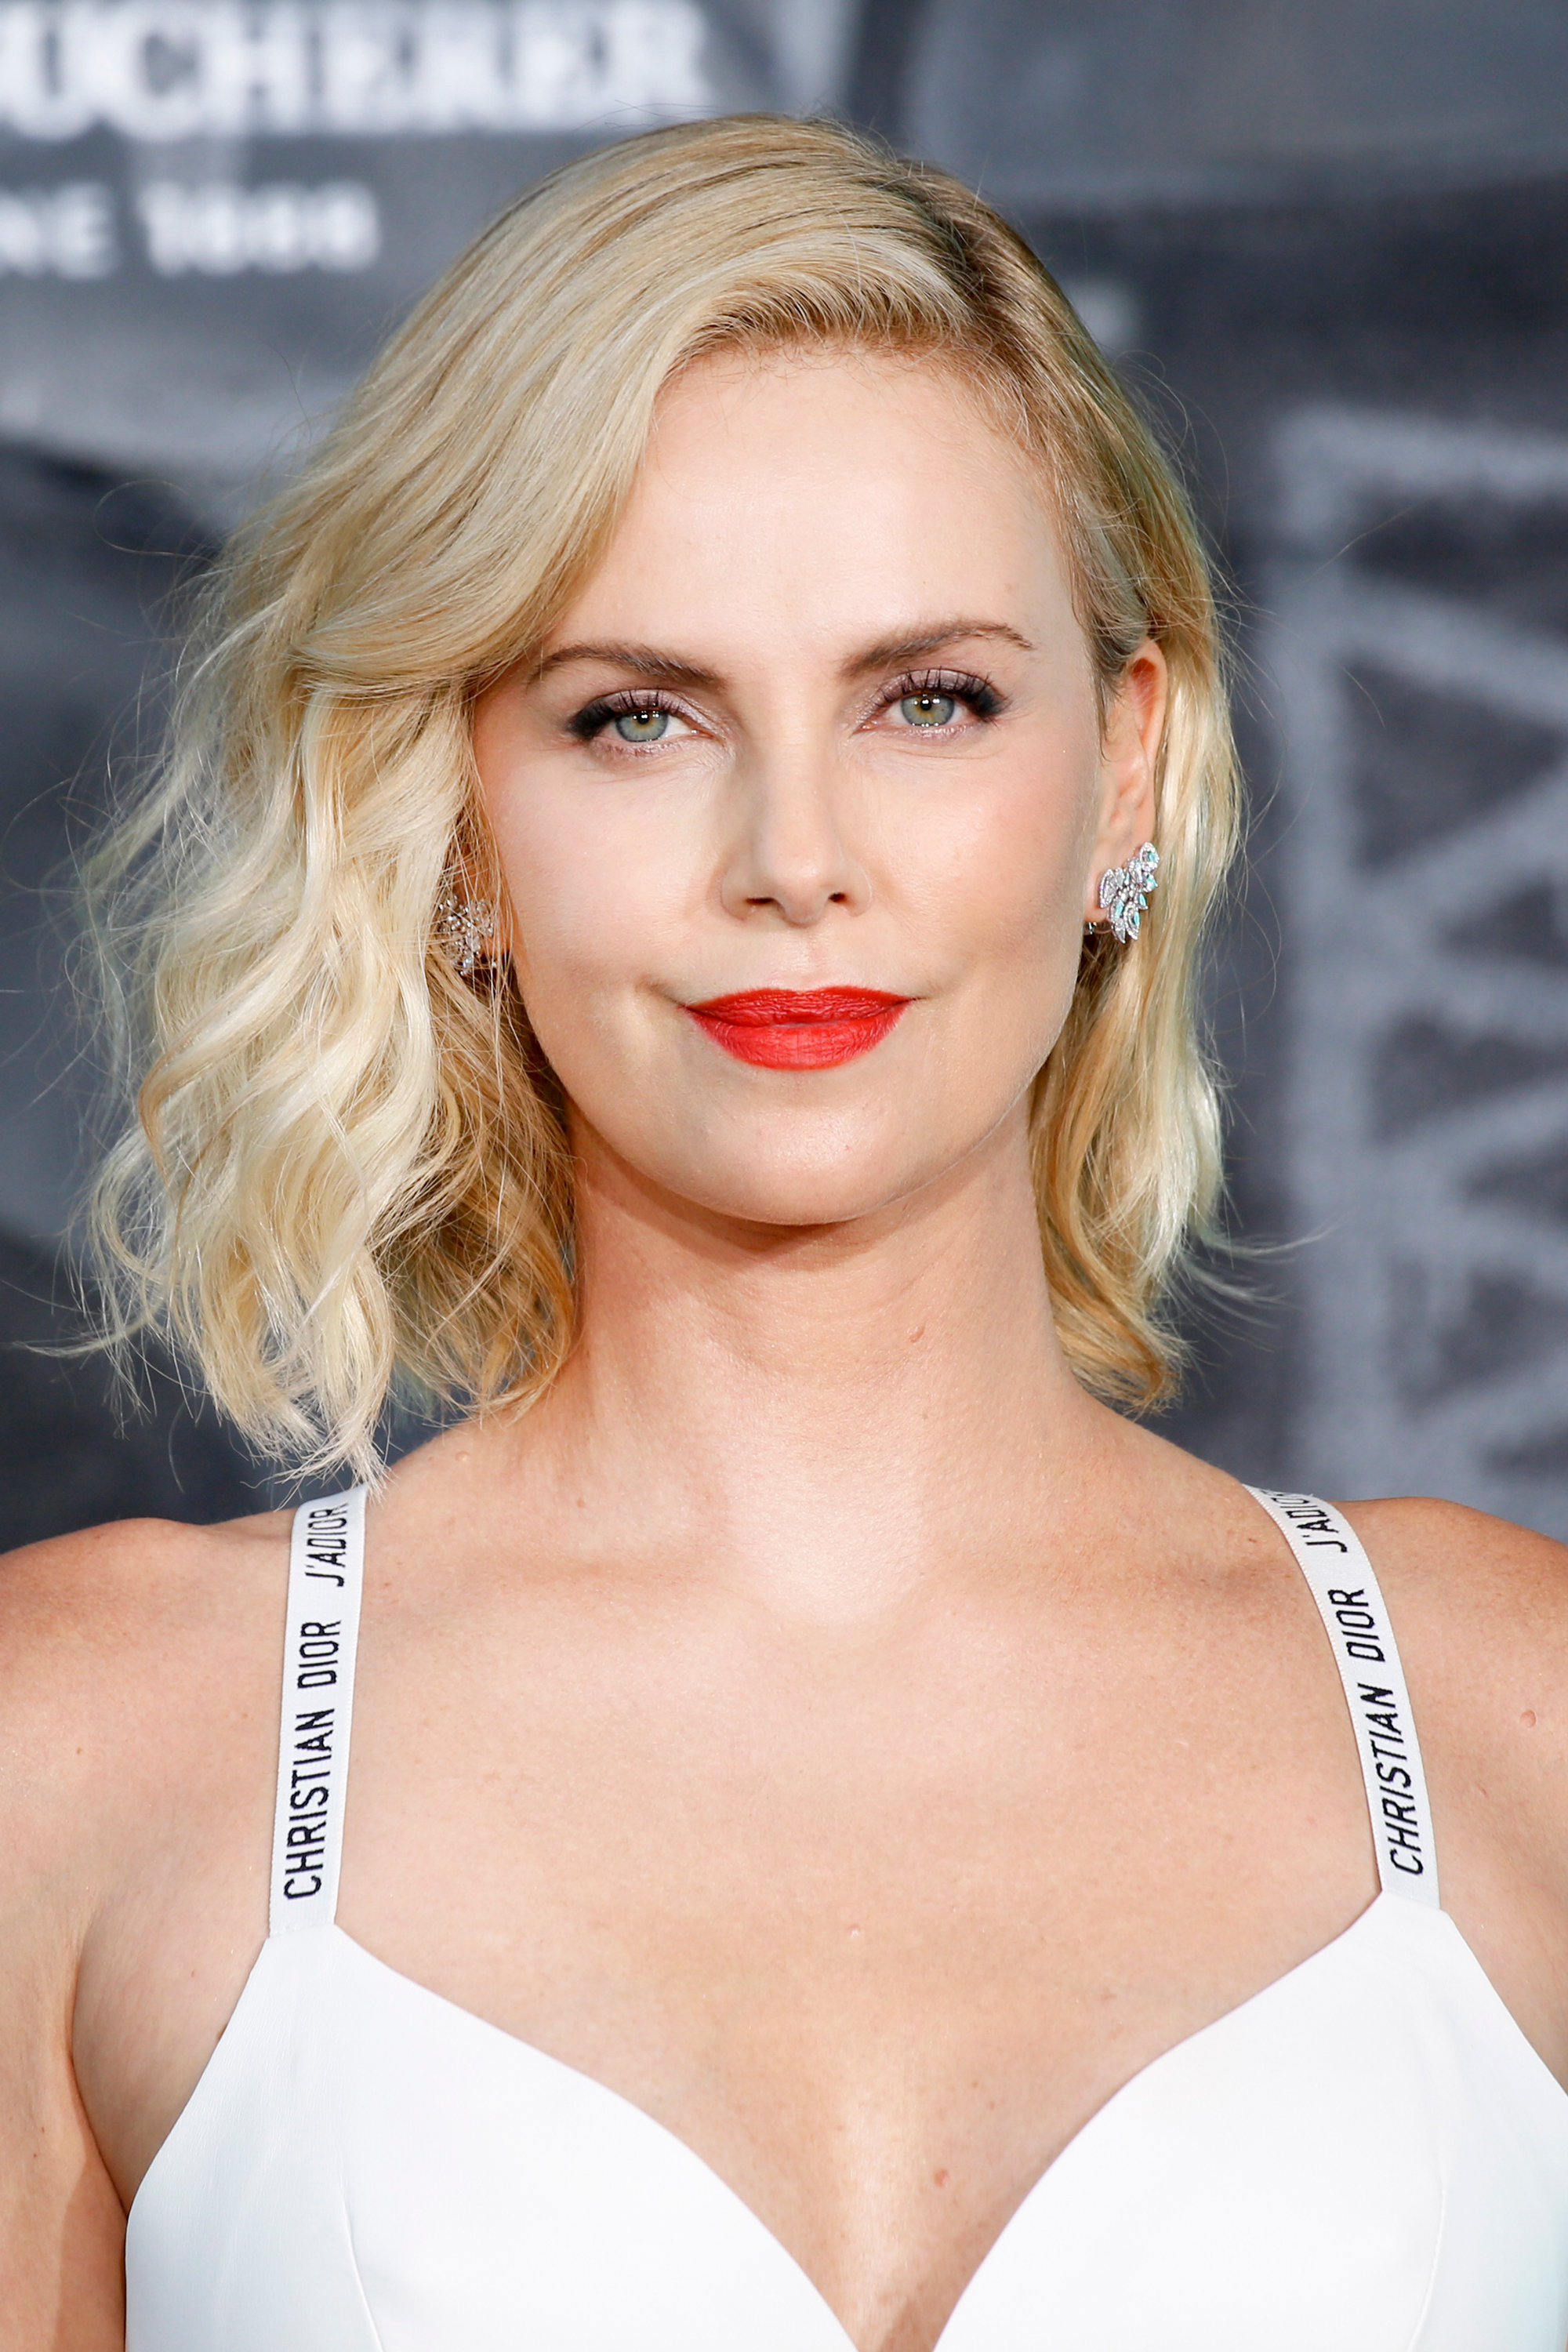 charlize theron plays with the 'atomic blonde' snapchat lens